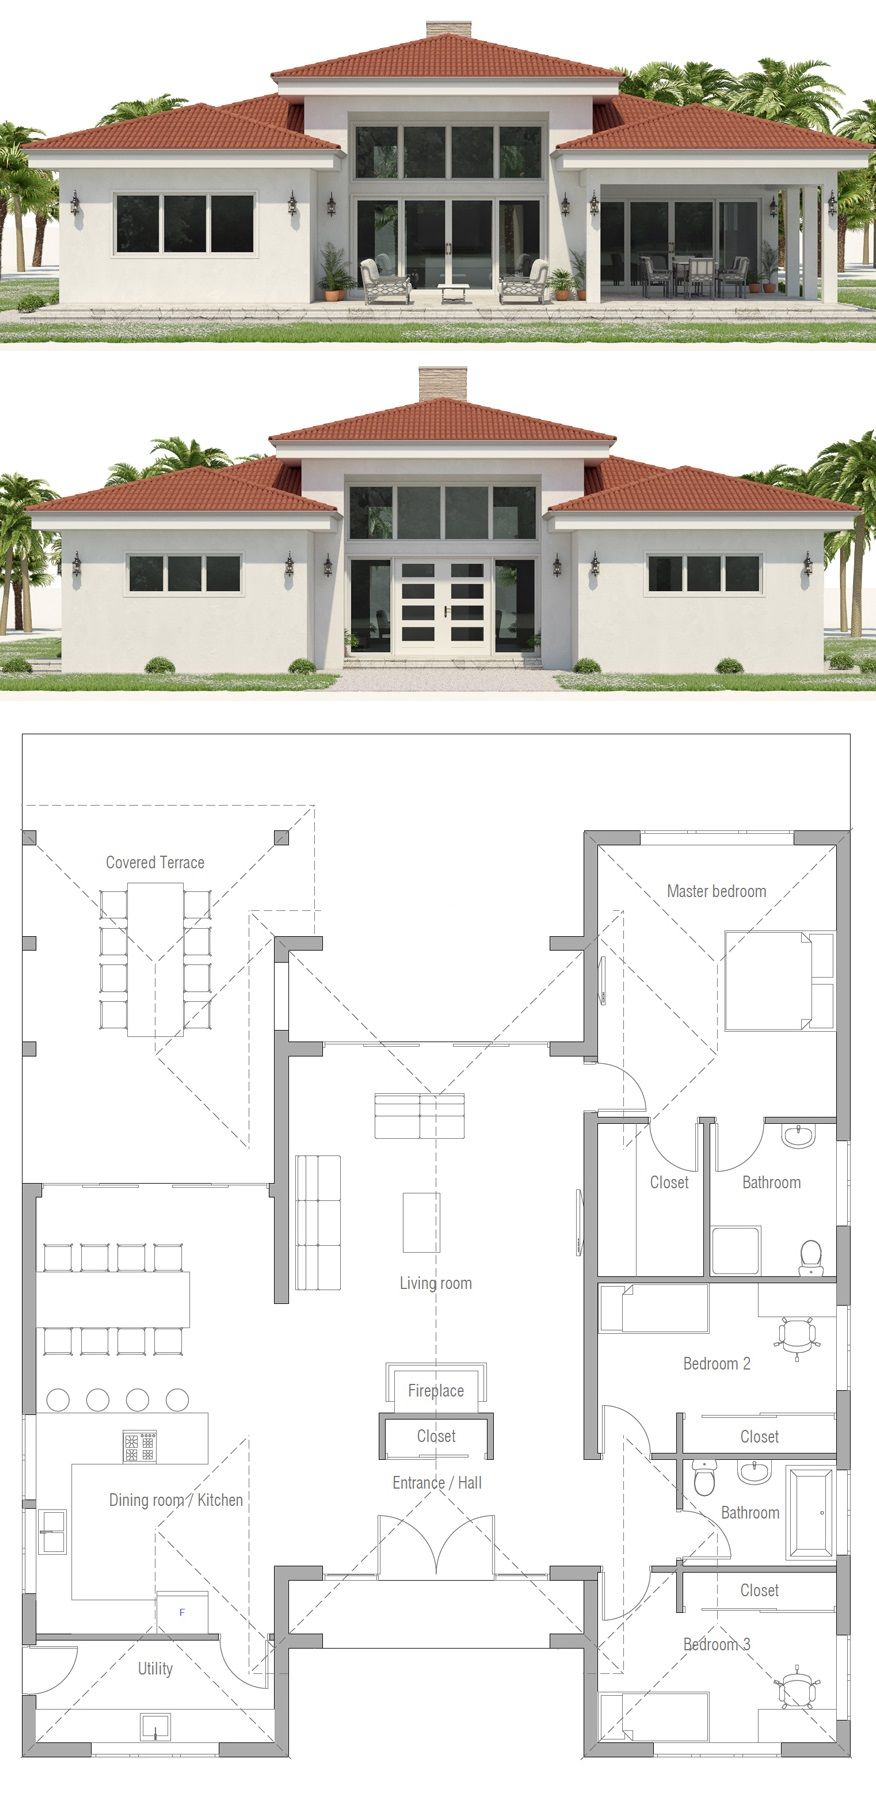 House Plans Home Plans New Home Homeplans Houseplans Architecture Dwell Archdaily Archilovers House Construction Plan My House Plans Beach House Plans